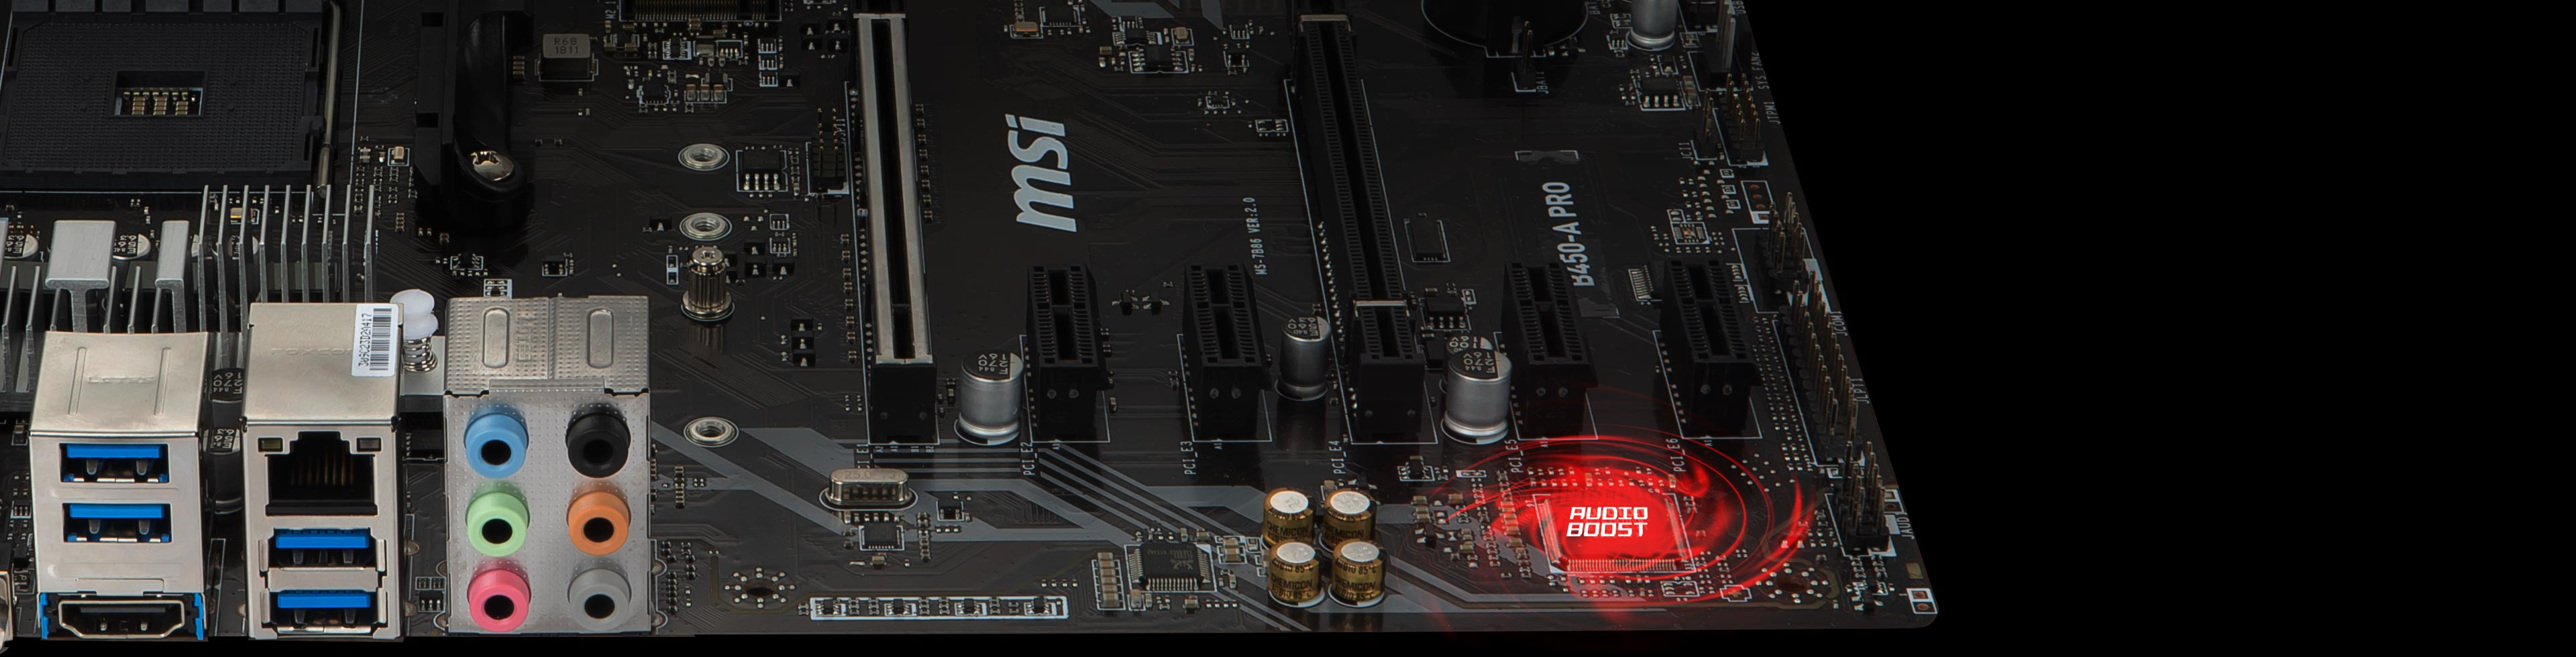 B450-A PRO | Motherboard - The world leader in motherboard